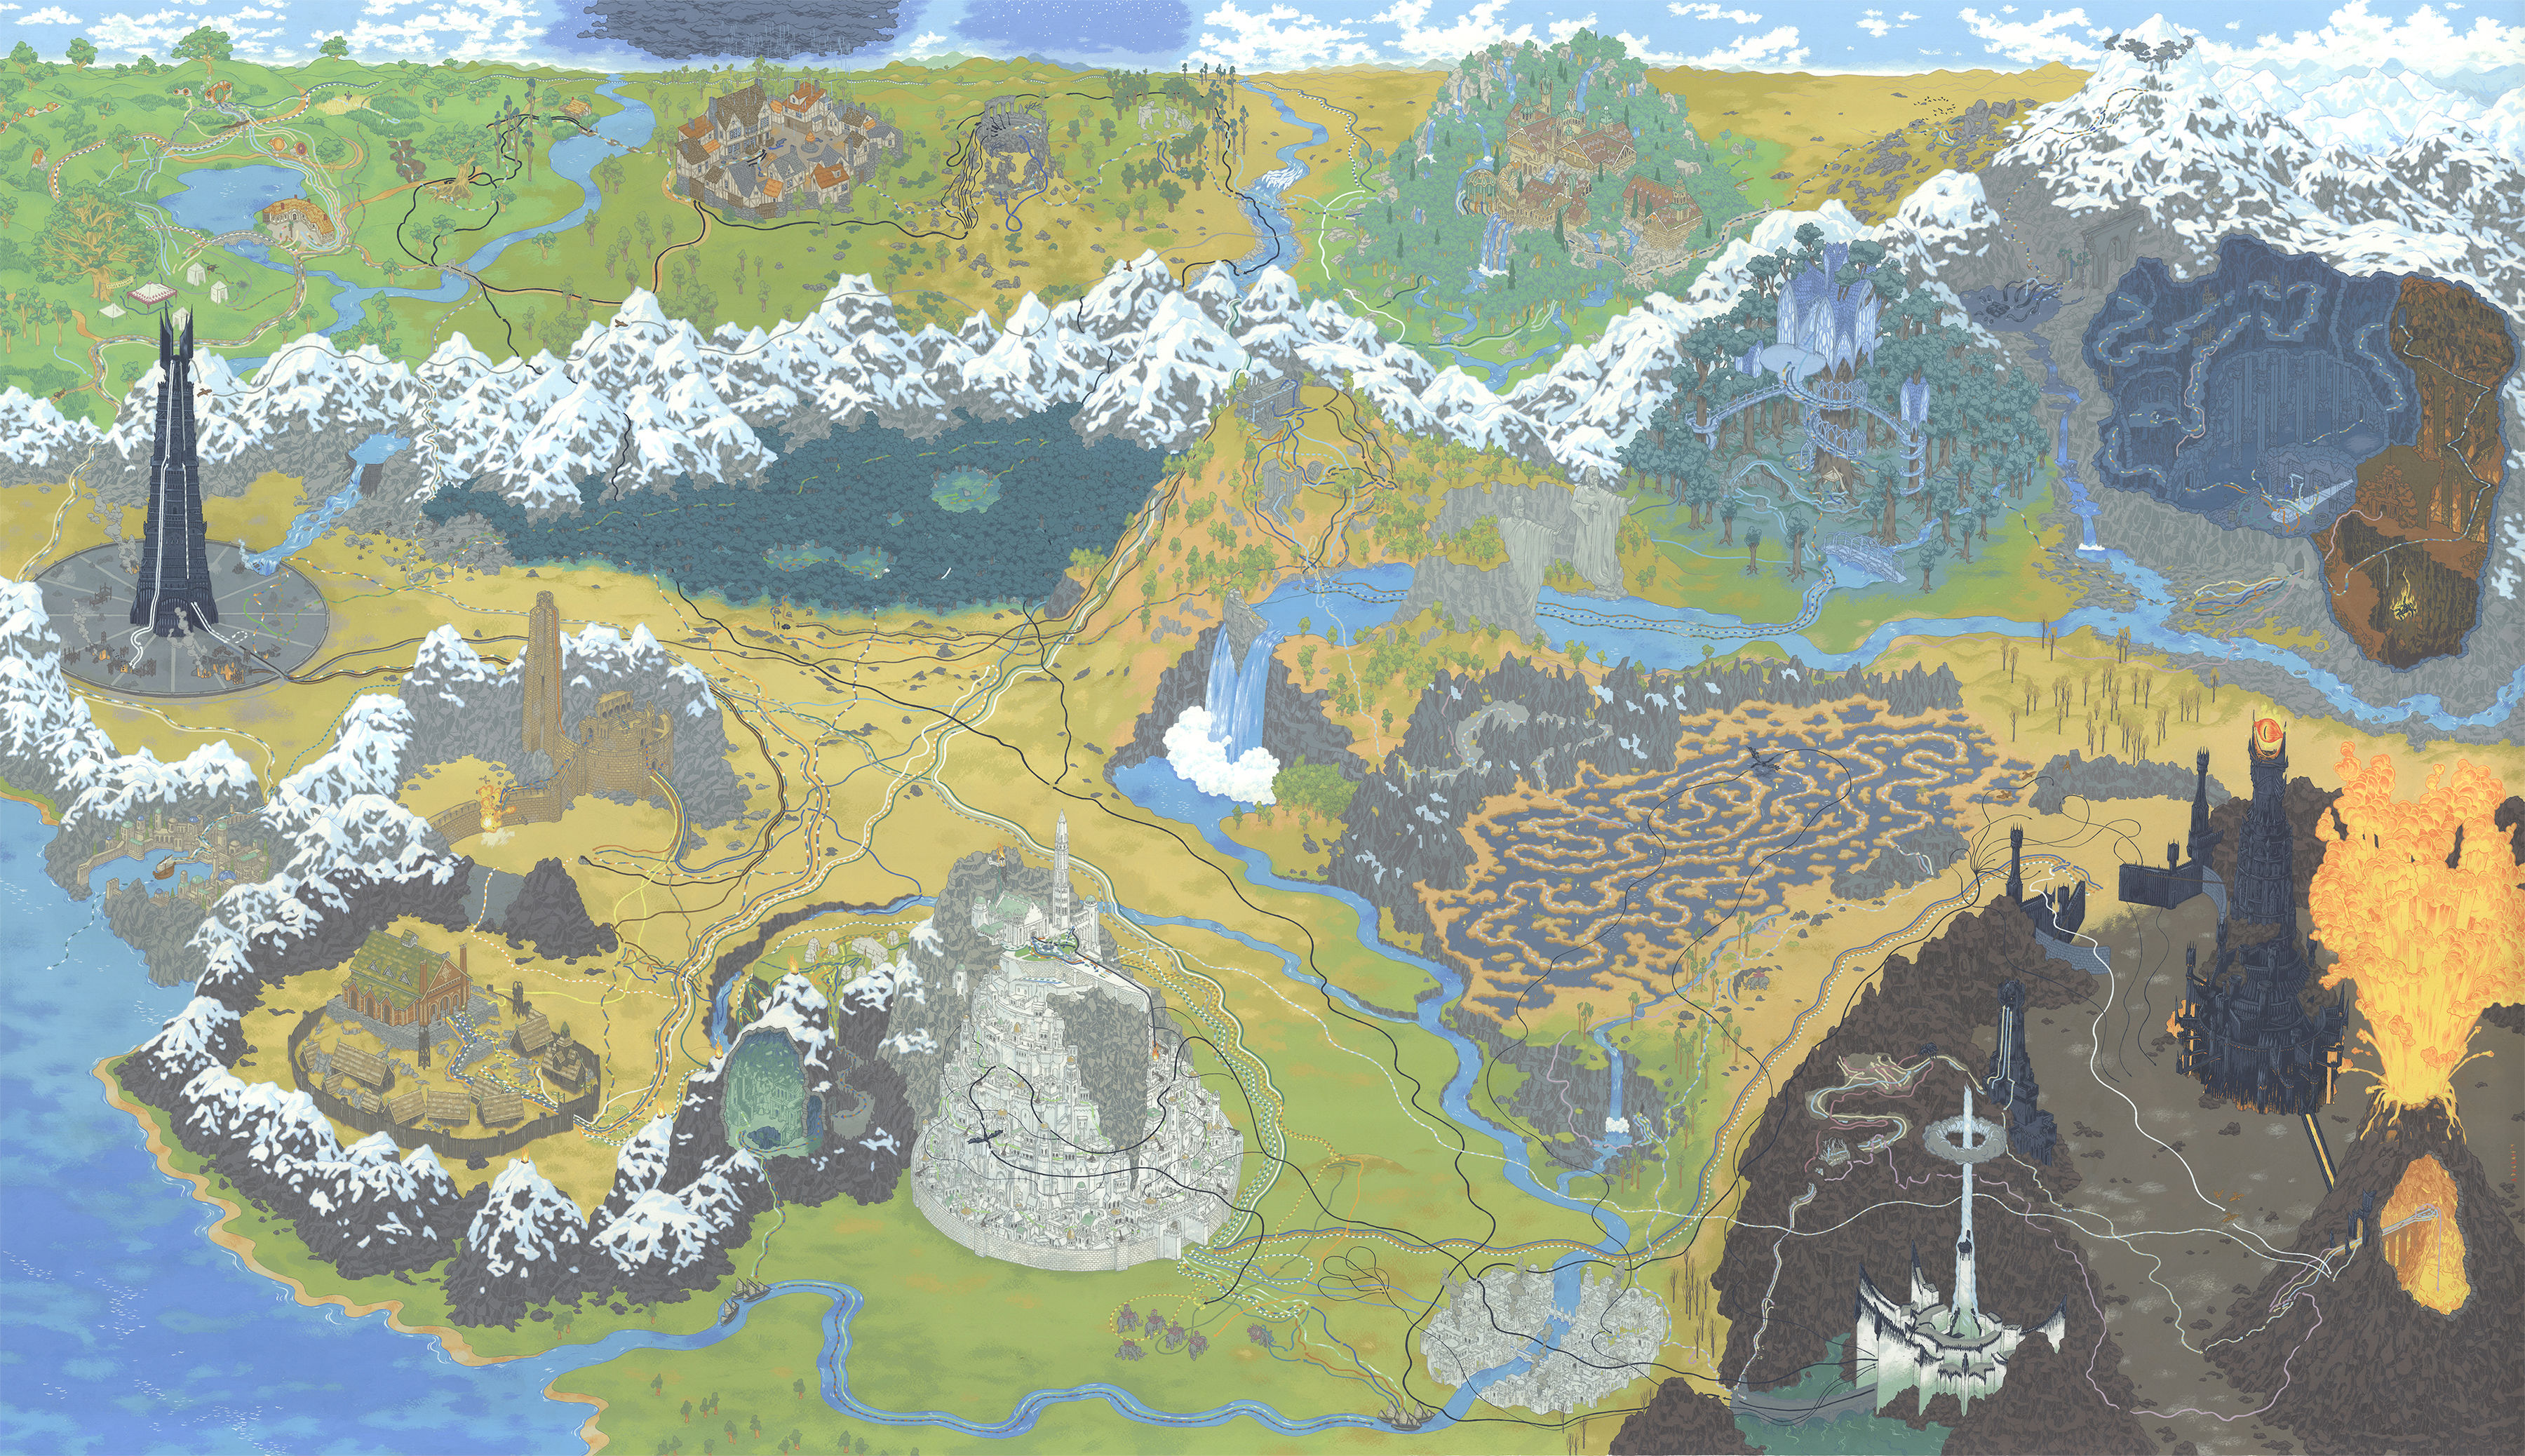 Large map of middle earth picture ideas references large map of middle earth entire entire map of middle earth on entire map of egypt publicscrutiny Images